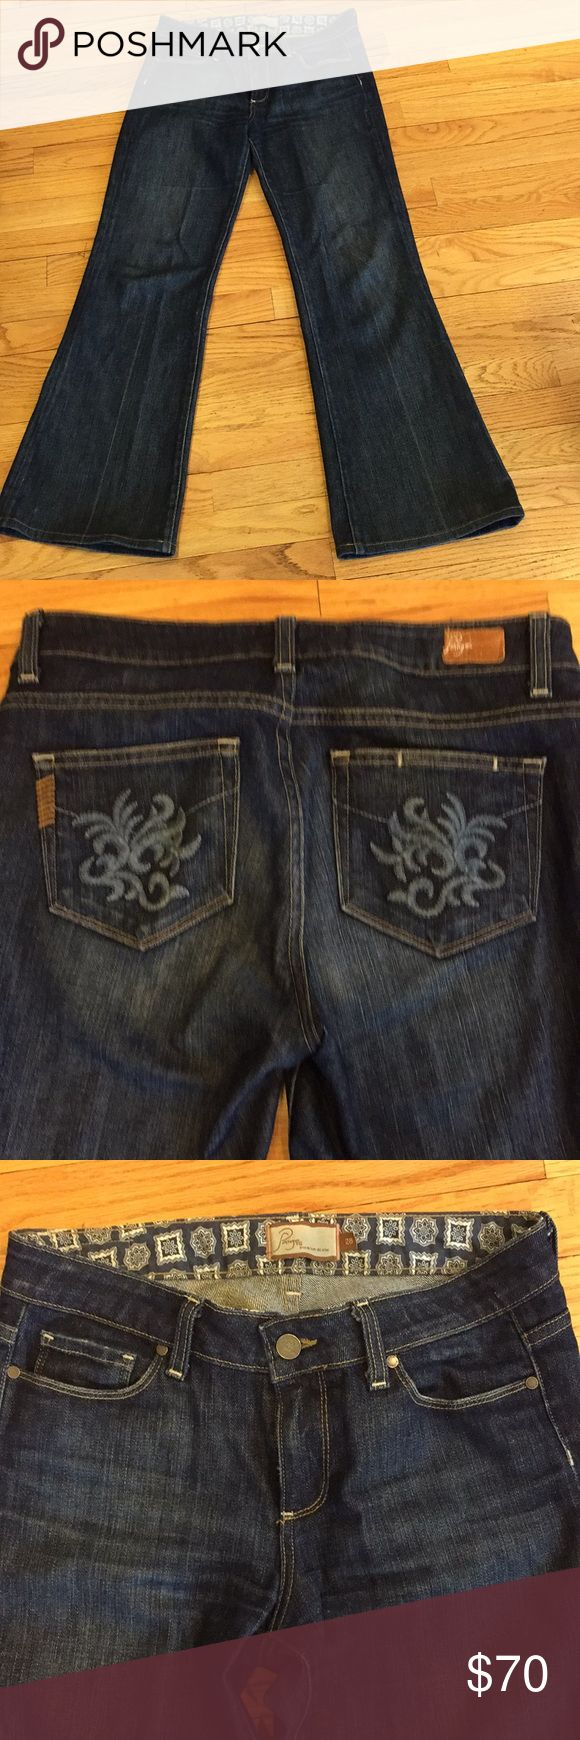 Anthropologie Paige denim jeans Anthropologie Paige Jeans. Size 28. Flaired bottom. Dark Jean color. Excellent condition. Size 28. No trades.   Measurements (Taken while lying flat)  Waist: 28 Length:  36-37 inc Anthropologie Jeans Flare & Wide Leg